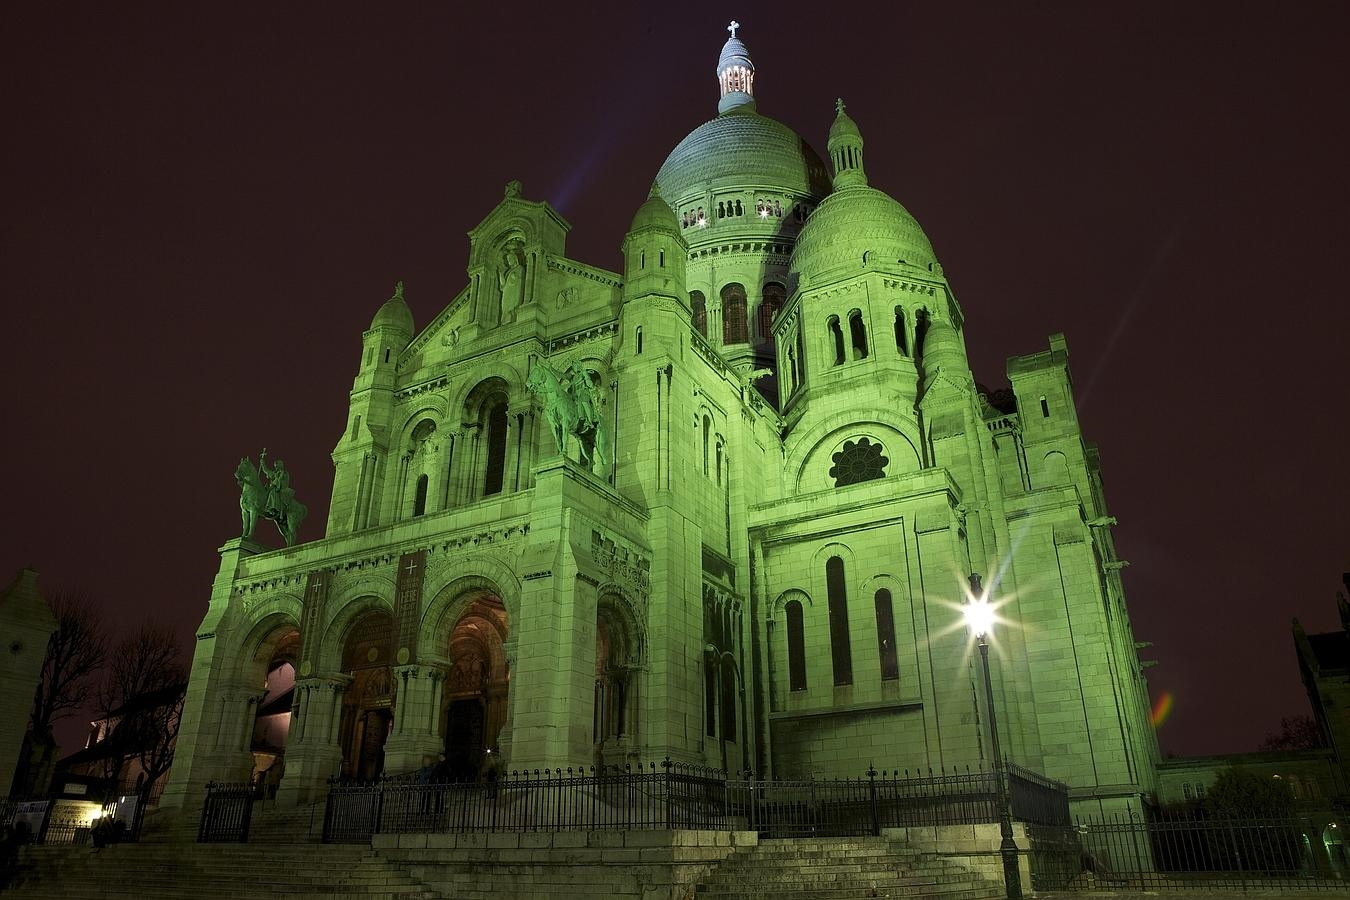 REPRO FREE 15/03/2015, Paris, France – Tourism Ireland's annual Global Greening initiative, to celebrate the island of Ireland and St Patrick, has gone from strength to strength – from its beginning in 2010, with just the Sydney Opera House going green, to this year, when about 150 landmark buildings and iconic sites across the world will turn a shade of green for our national day. PIC SHOWS: The Sacré-Coeur Basilica in Paris joins Tourism Ireland's Global Greening initiative, to celebrate the island of Ireland and St Patrick. Pic – Mathieu Sauerwein (no repro fee) Further press info – Sinéad Grace, Tourism Ireland 087 685 9027